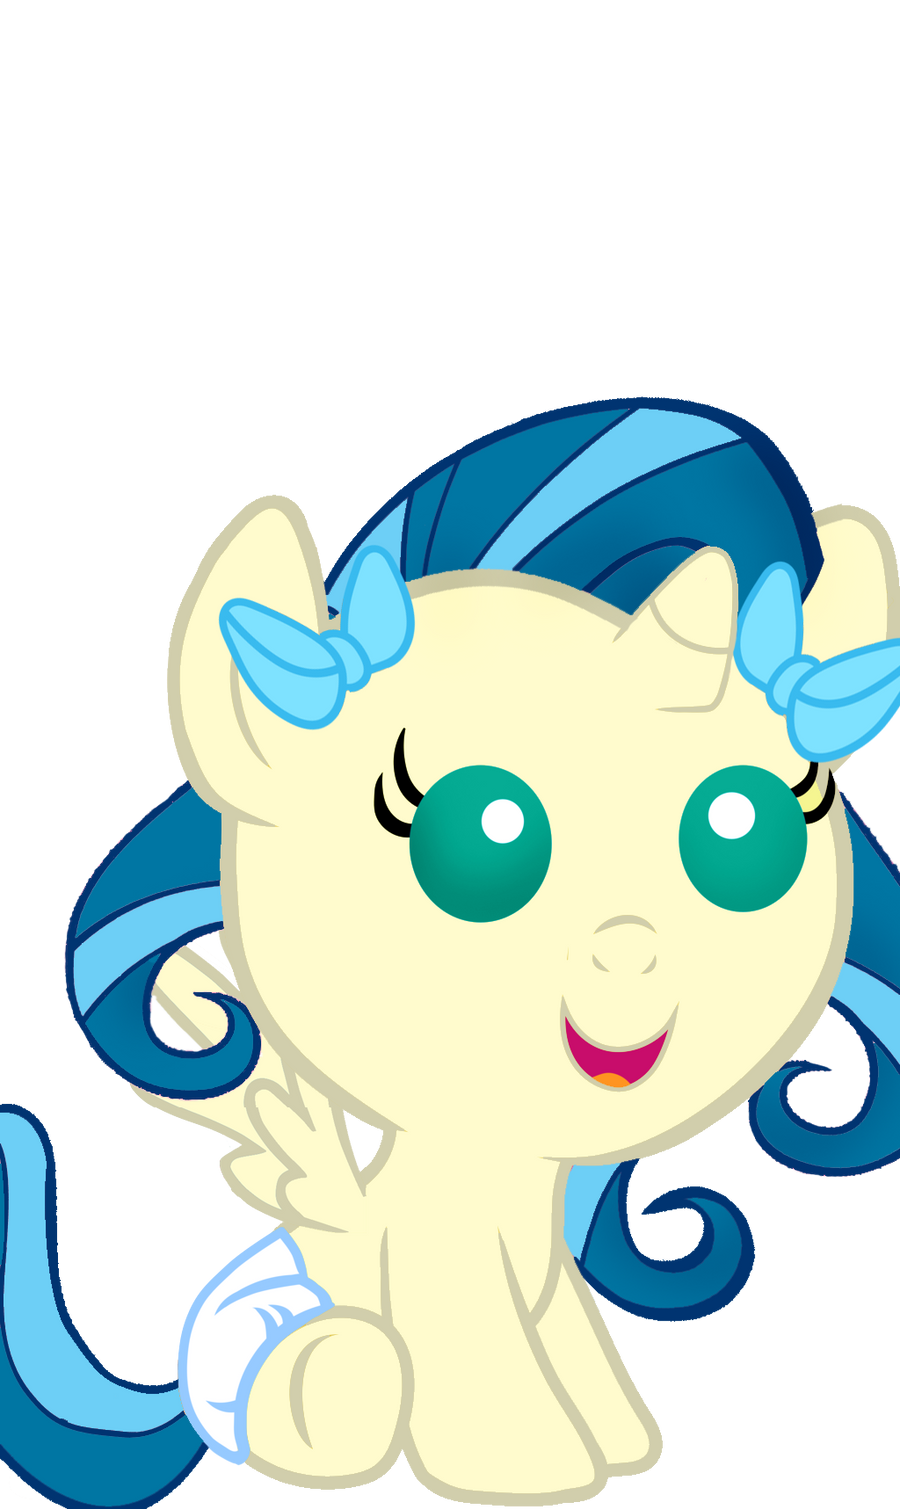 Me Like A Baby Oc Pony By Mirry92 On Deviantart